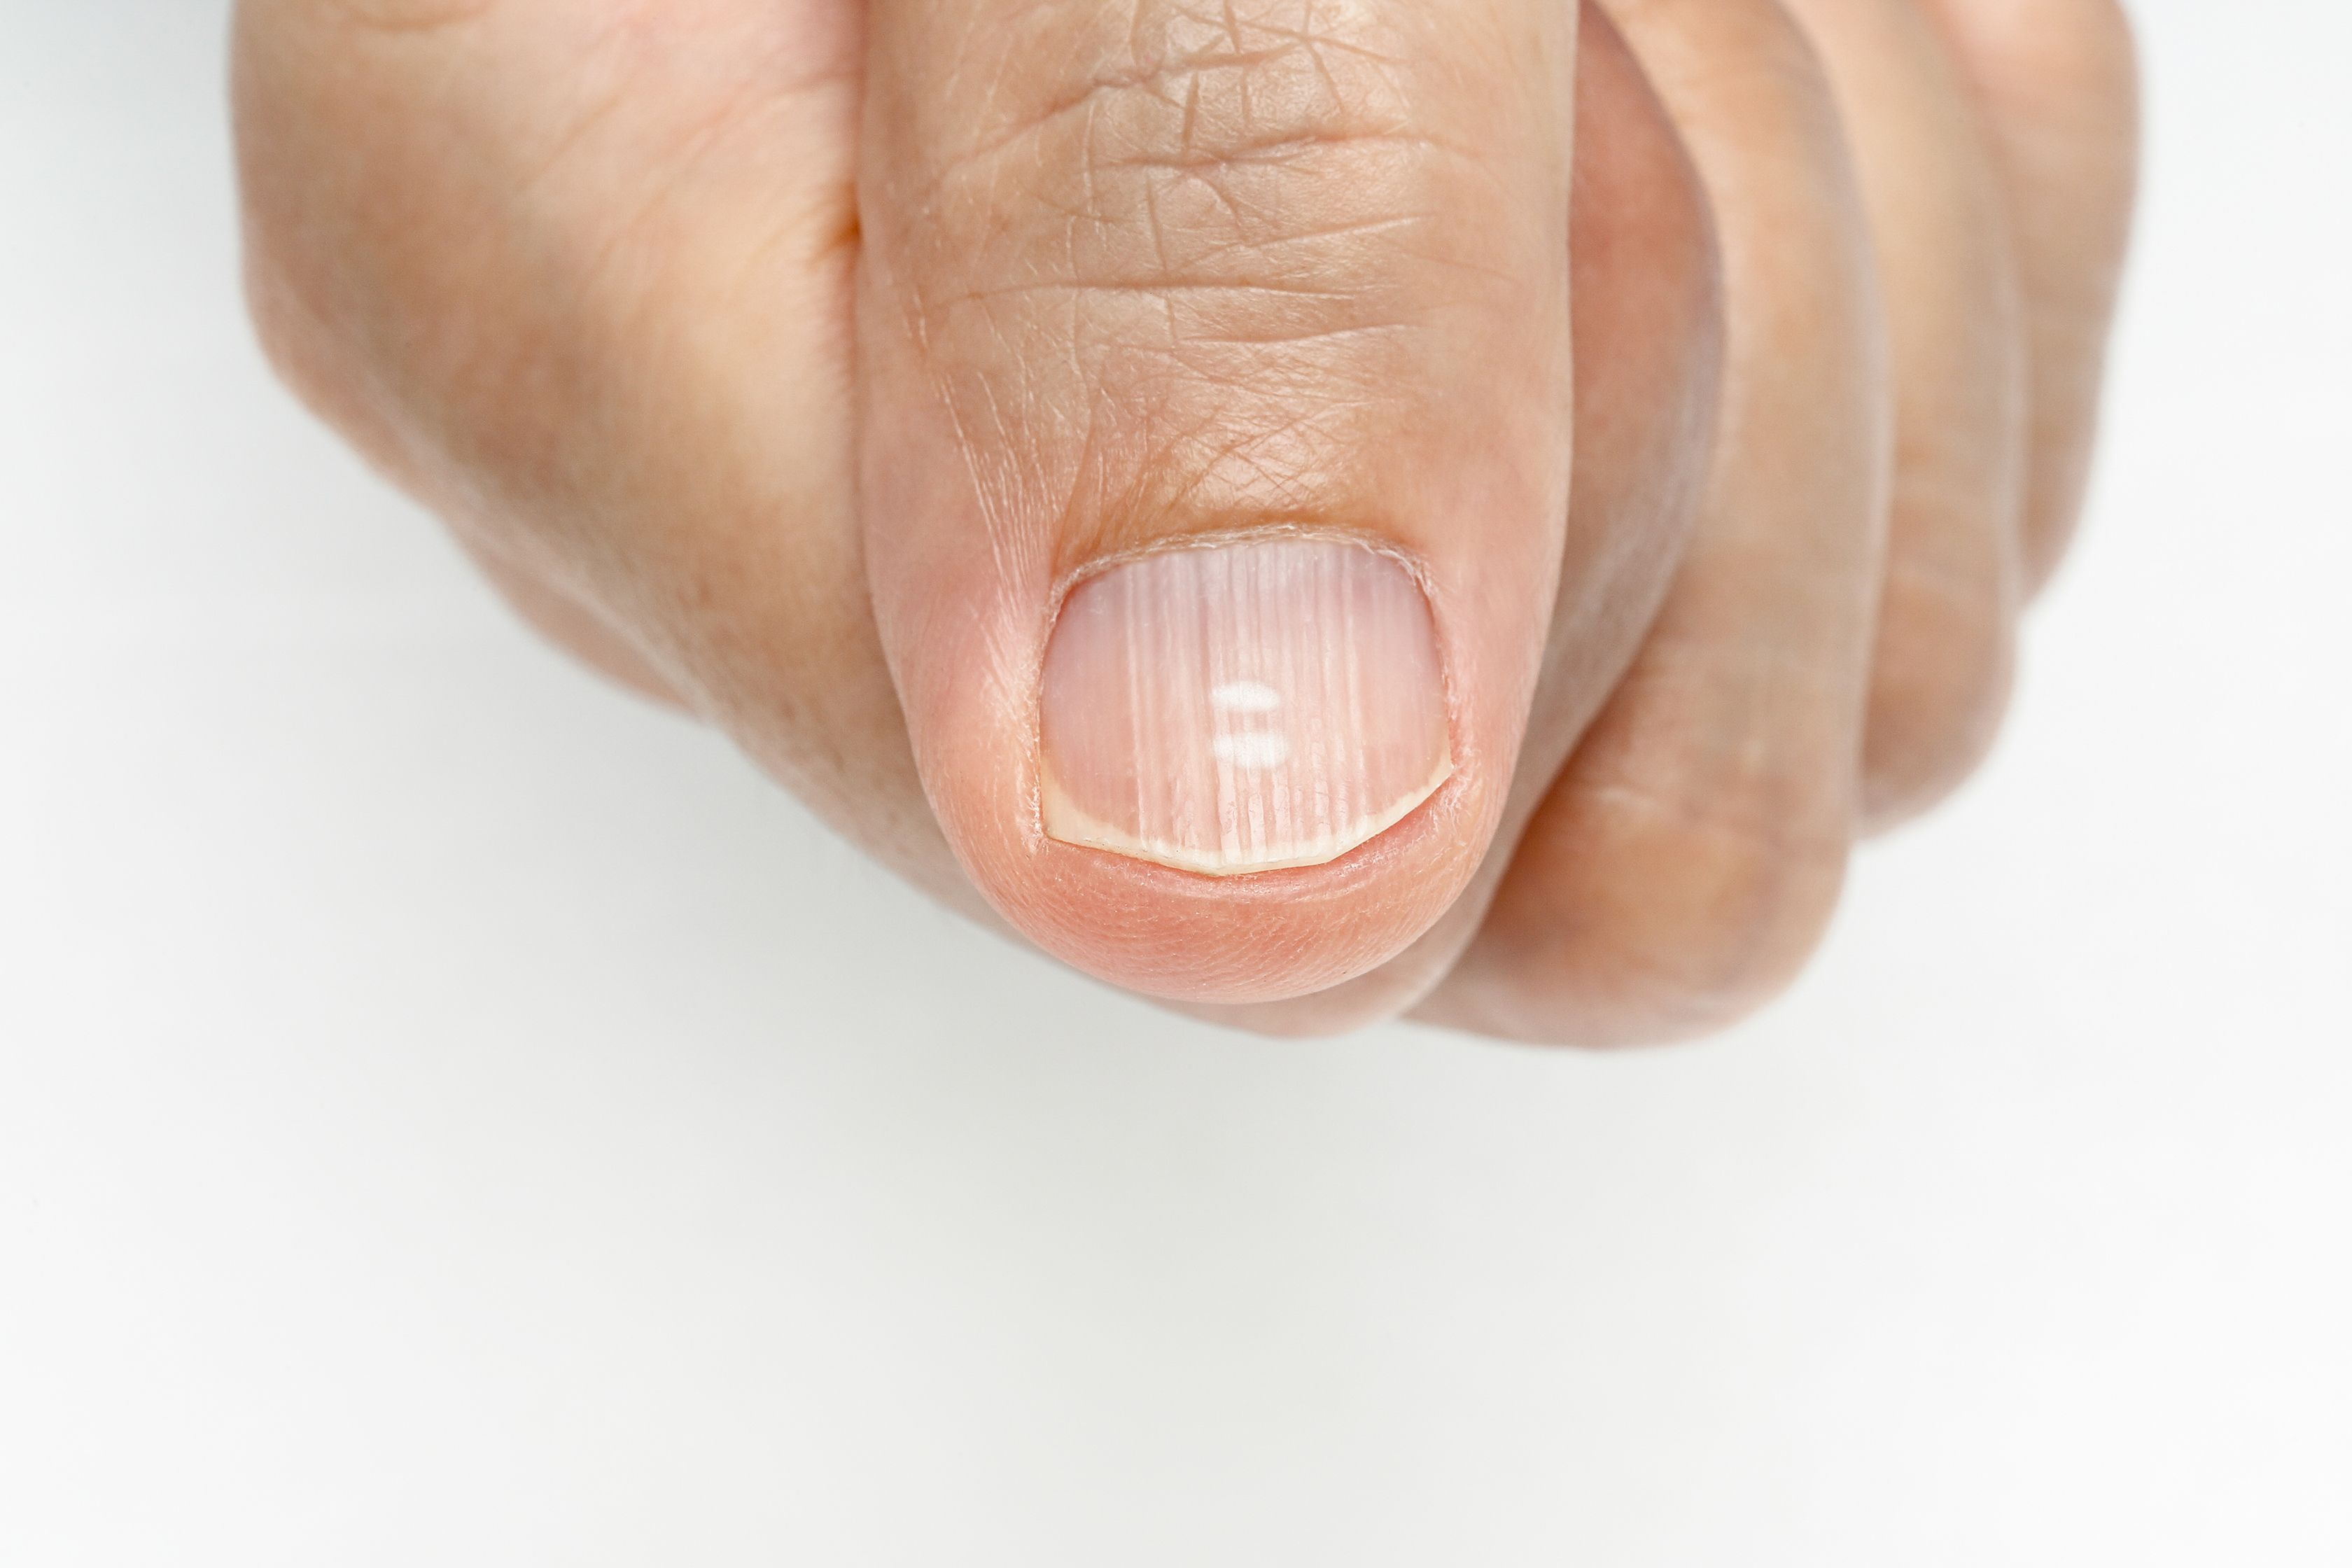 7 Ways To Reduce Fingernail Ridges | Prevention